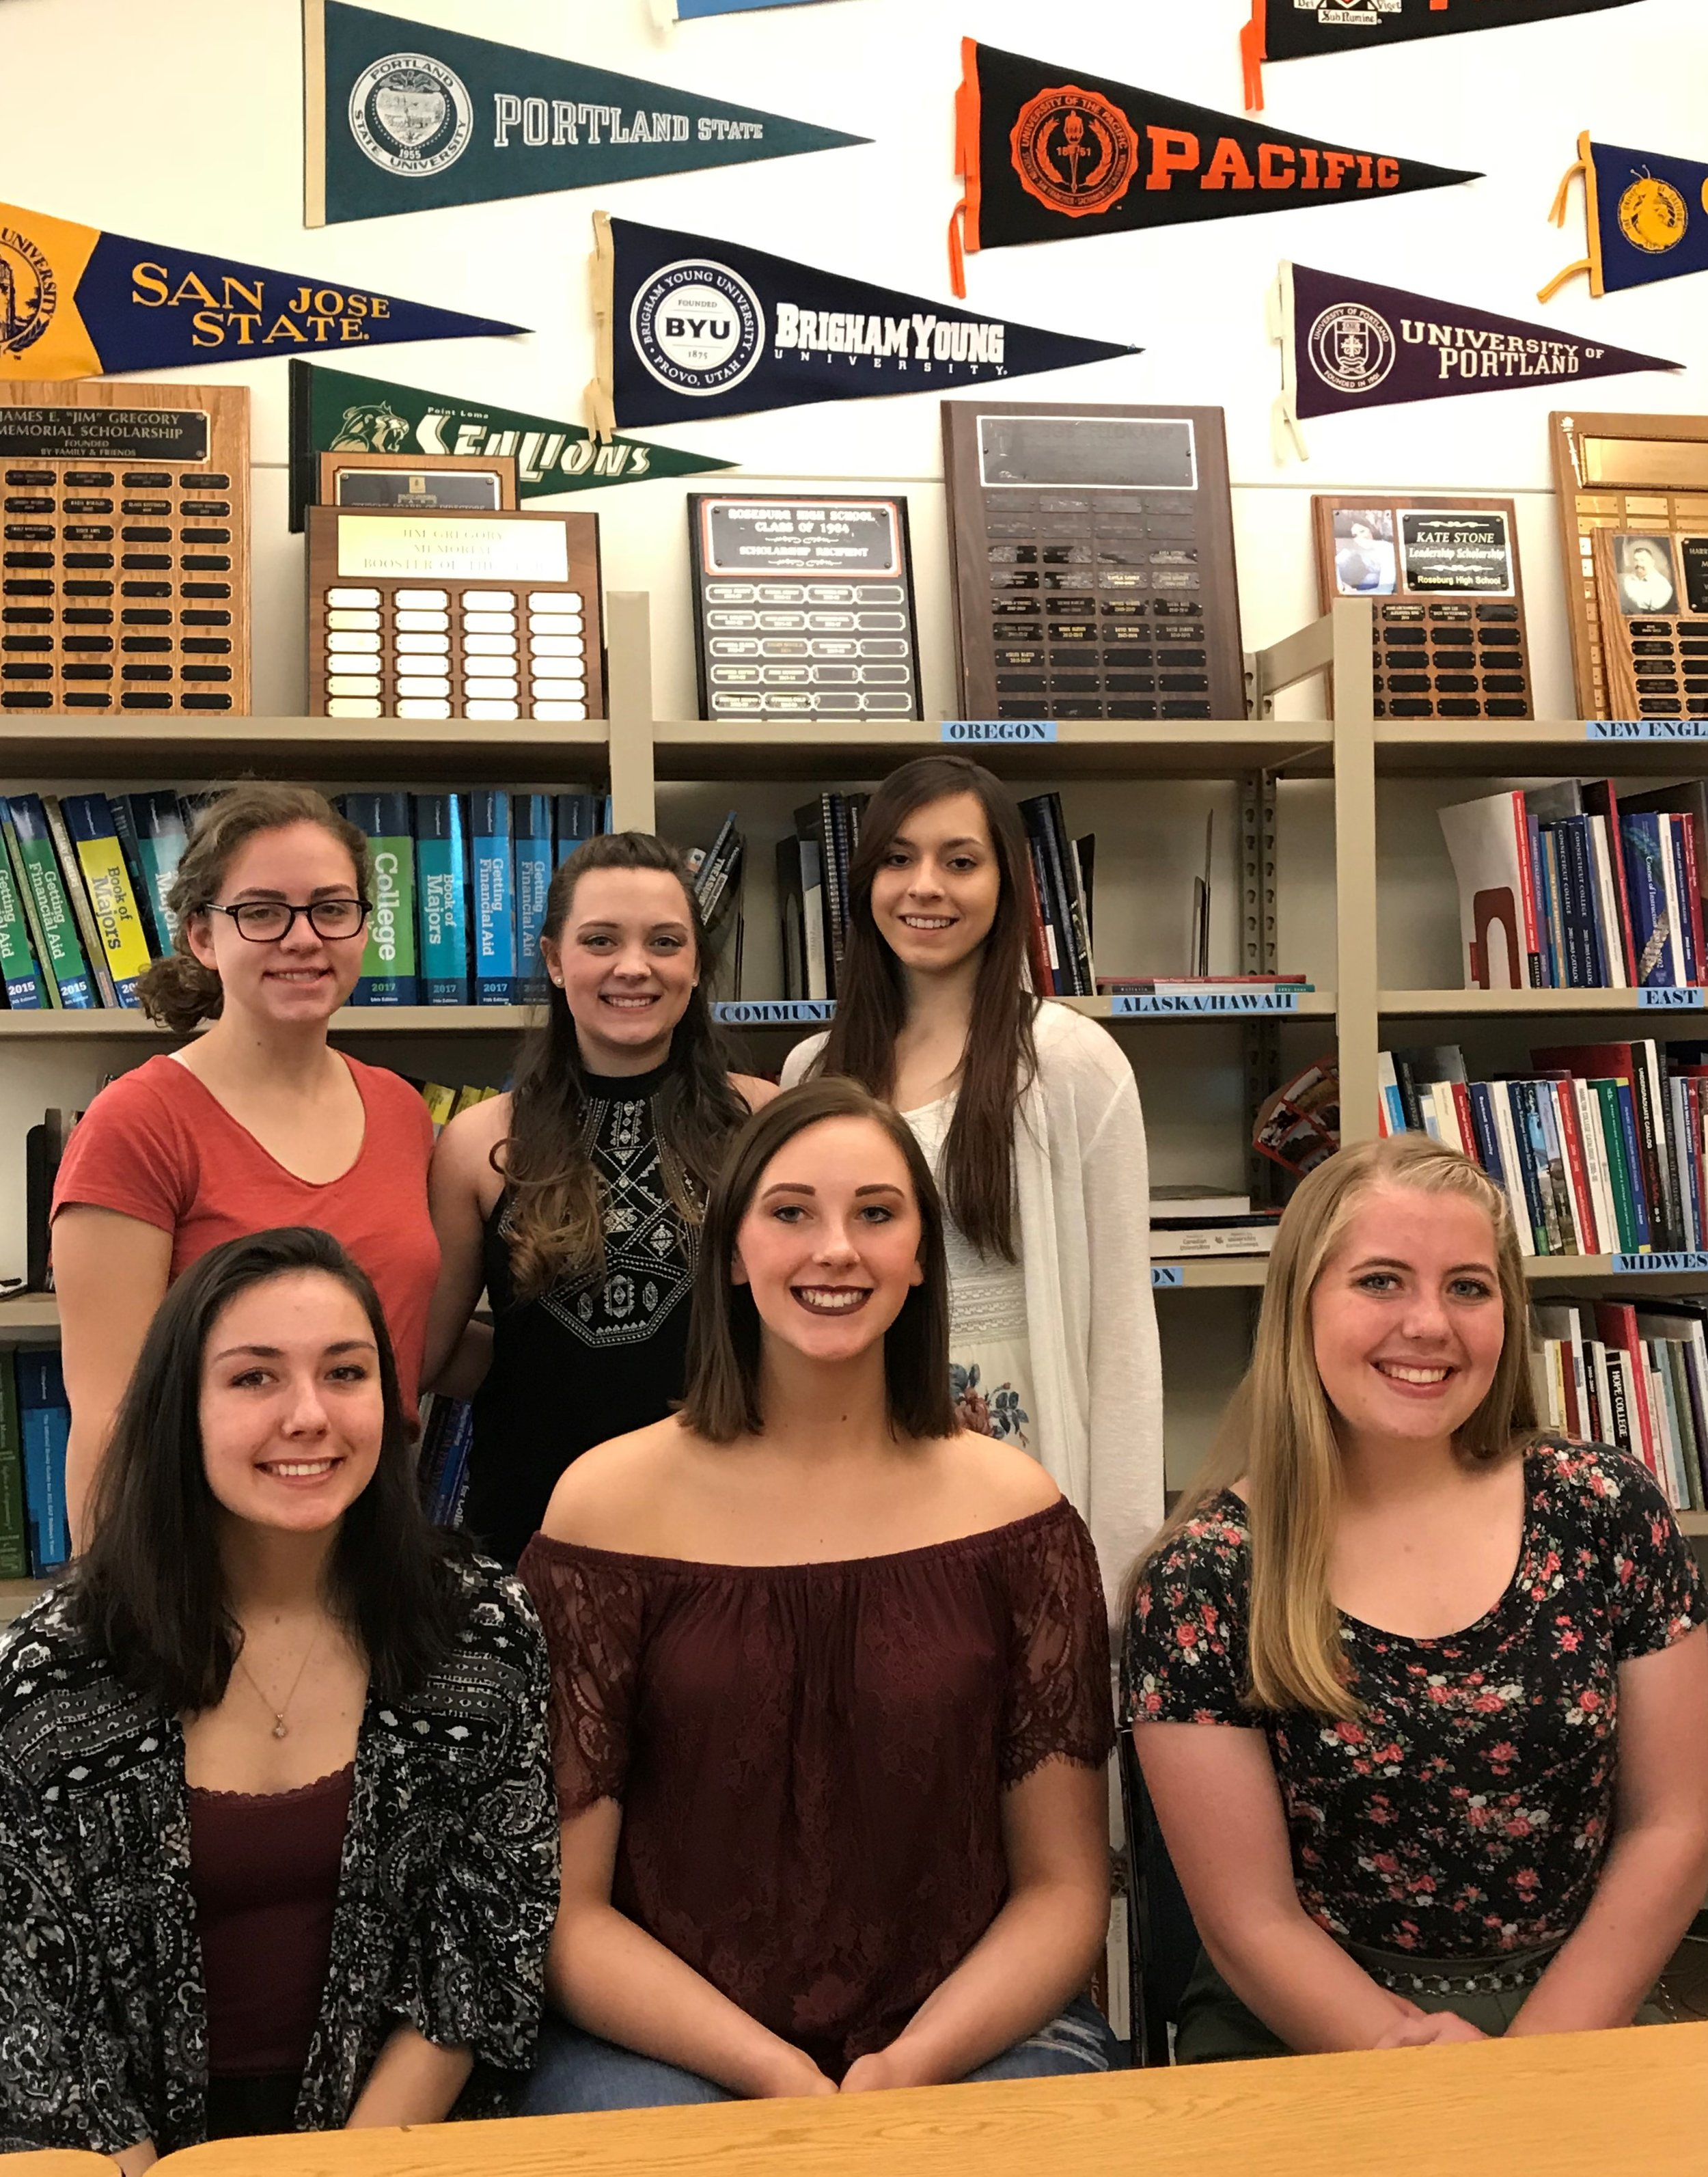 """Pictured in the RHS Career Center are (seated) Erin Ware, Jenna Smith, Grace Harker; (standing) Alison Forsloff, Madison Coffey and Hannah Wicks. Alexandria Cortes and Madison Severson unfortunately missed the photo due to participating in the Blood Drive that morning.            72    544x376               Normal    0                   false    false    false       EN-US    X-NONE    X-NONE                                                                                                                                                                                                                                                                                                                                                                                                                                                                                                                                                                                                                                                                                                                                                                                                                                                                                                                                                                                                                                                                                                                                                                                                                                                                     /* Style Definitions */  table.MsoNormalTable {mso-style-name:""""Table Normal""""; mso-tstyle-rowband-size:0; mso-tstyle-colband-size:0; mso-style-noshow:yes; mso-style-priority:99; mso-style-parent:""""""""; mso-padding-alt:0in 5.4pt 0in 5.4pt; mso-para-margin:0in; mso-para-margin-bottom:.0001pt; mso-pagination:widow-orphan; font-size:10.0pt; font-family:""""Times New Roman"""",serif;}         FOR """